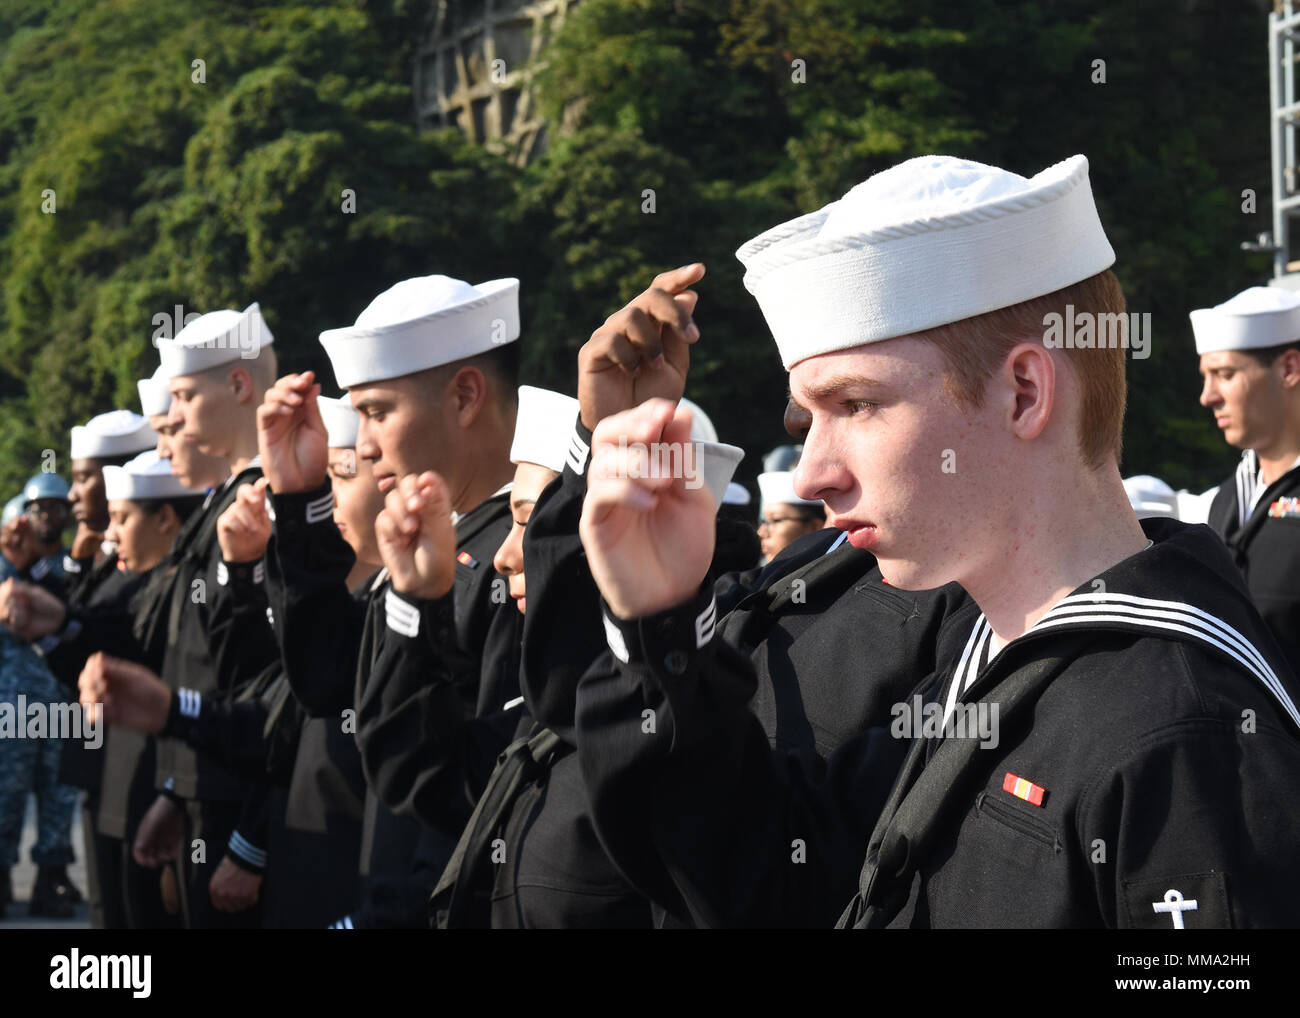 Dress Blues Inspection Stock Photos & Dress Blues Inspection